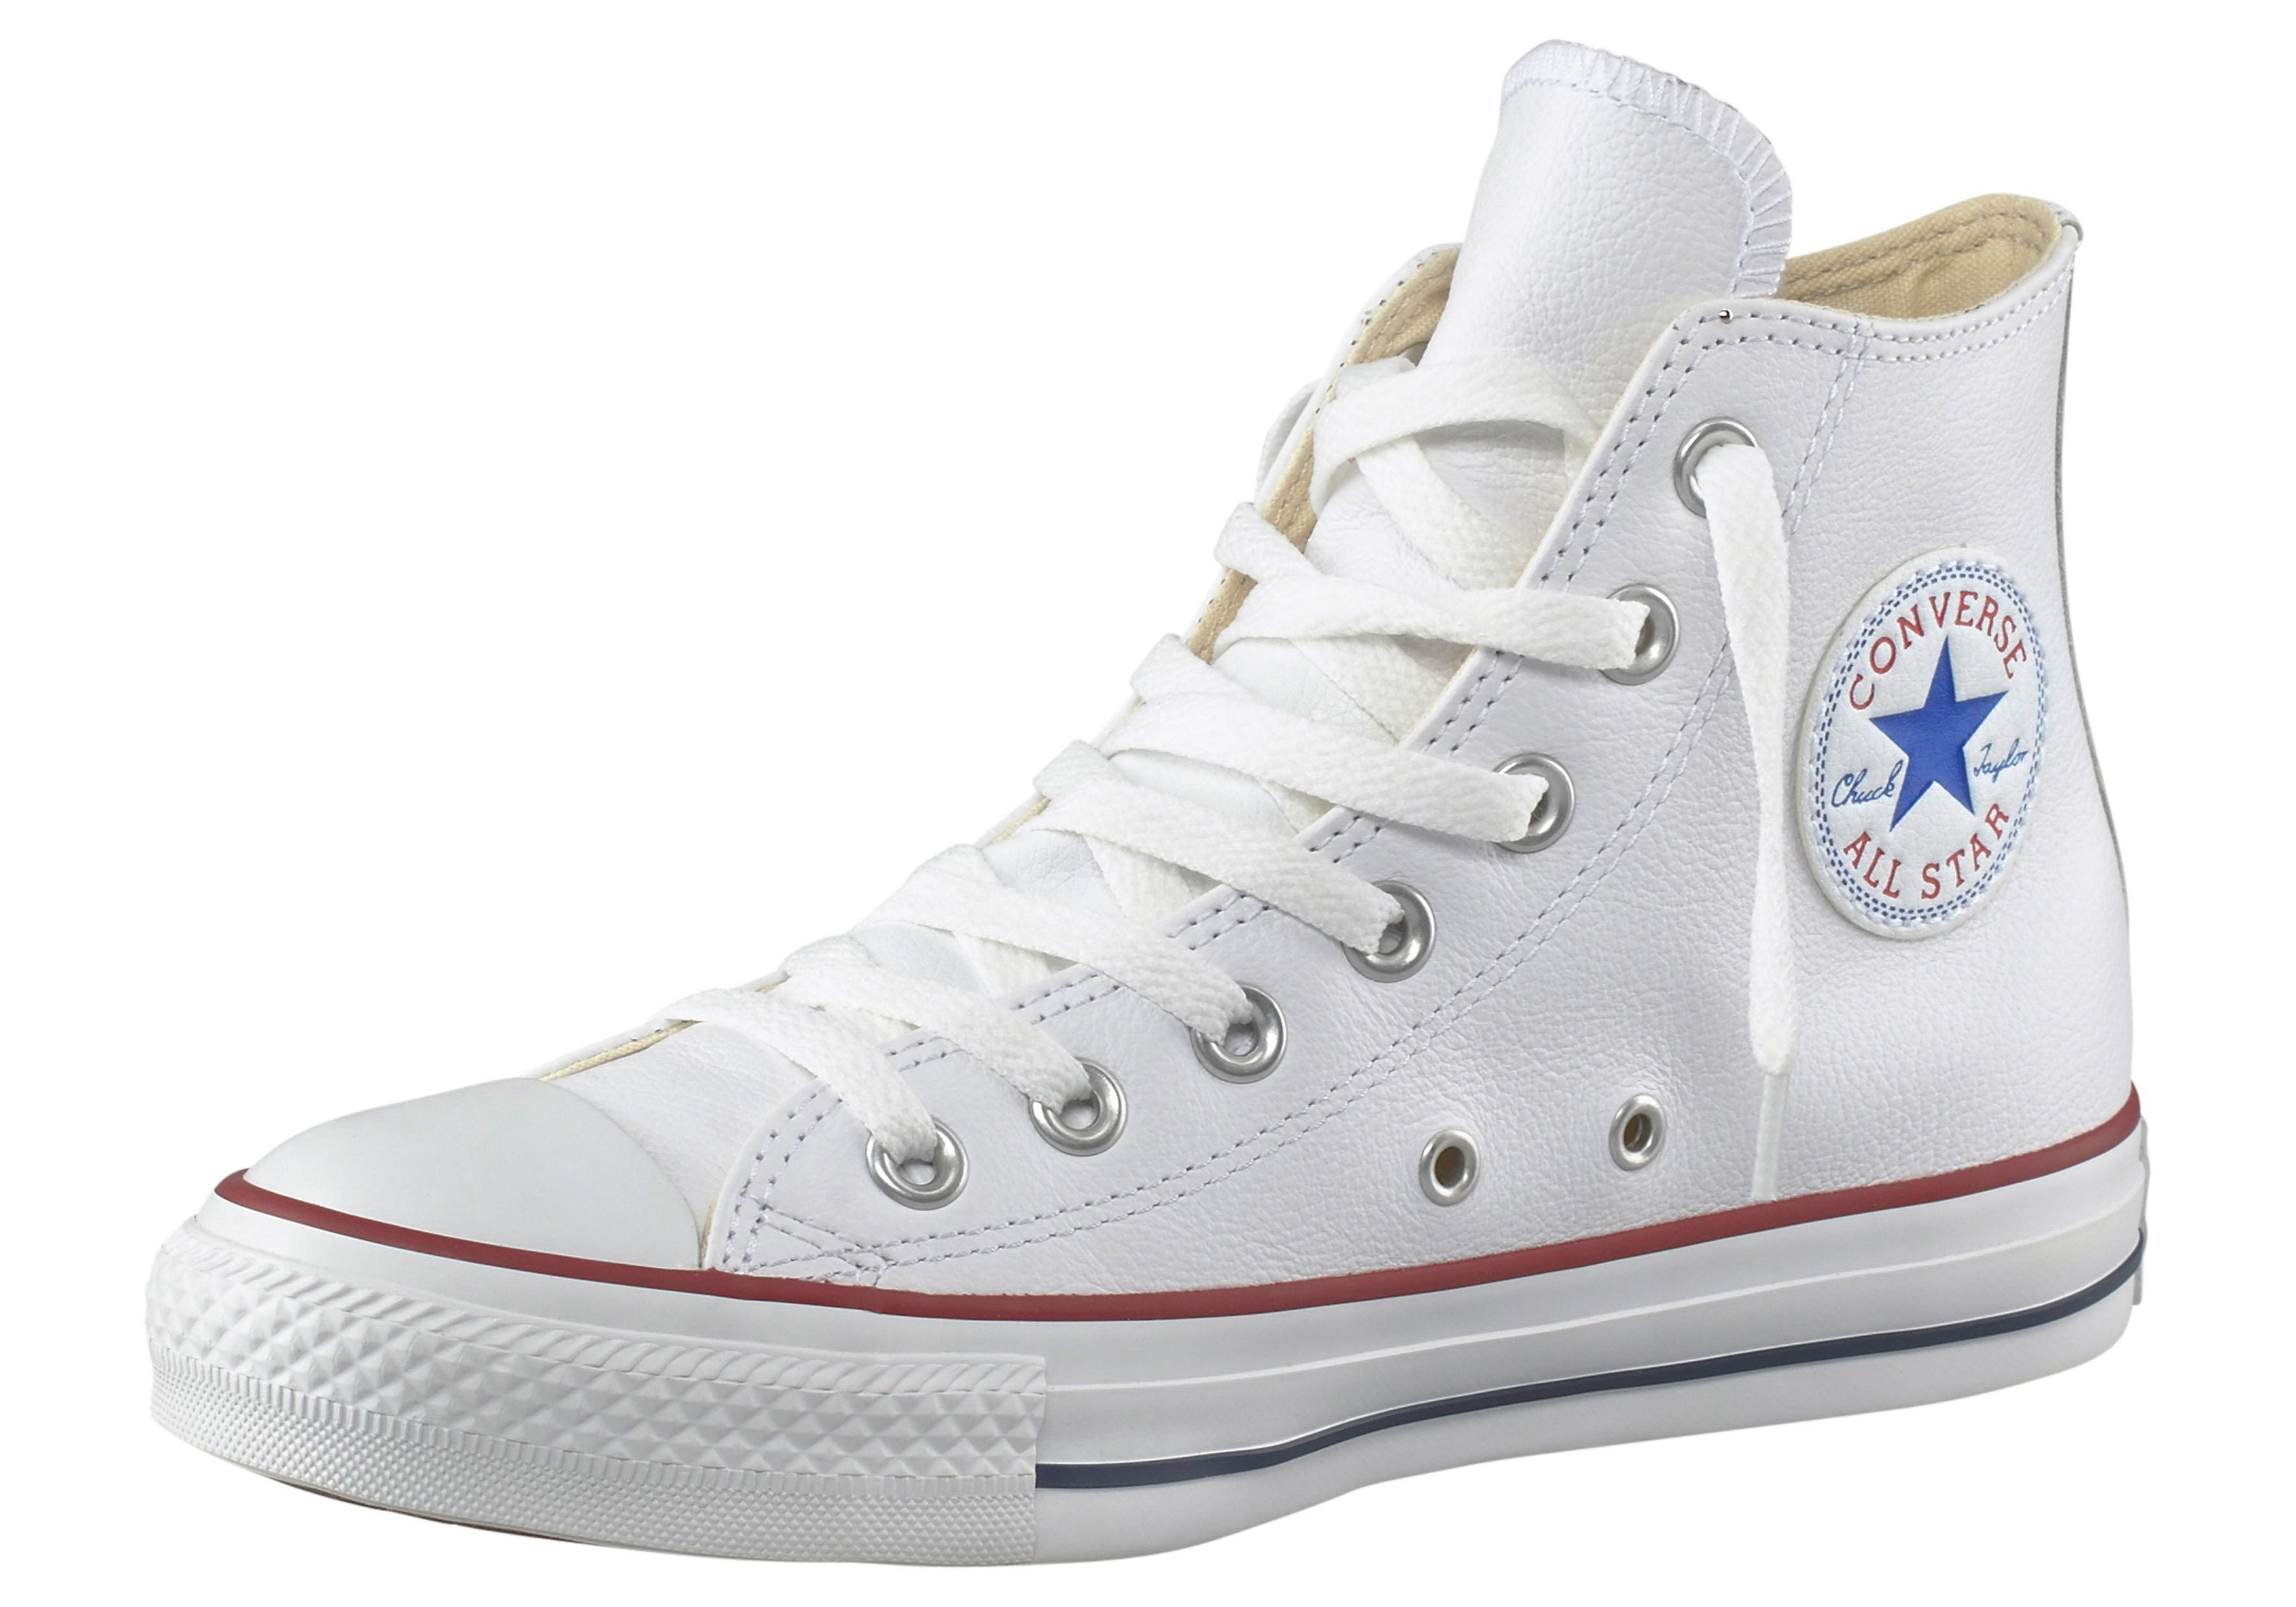 Afbeeldingsbron: CONVERSE Sneakers All Star Basic Leather